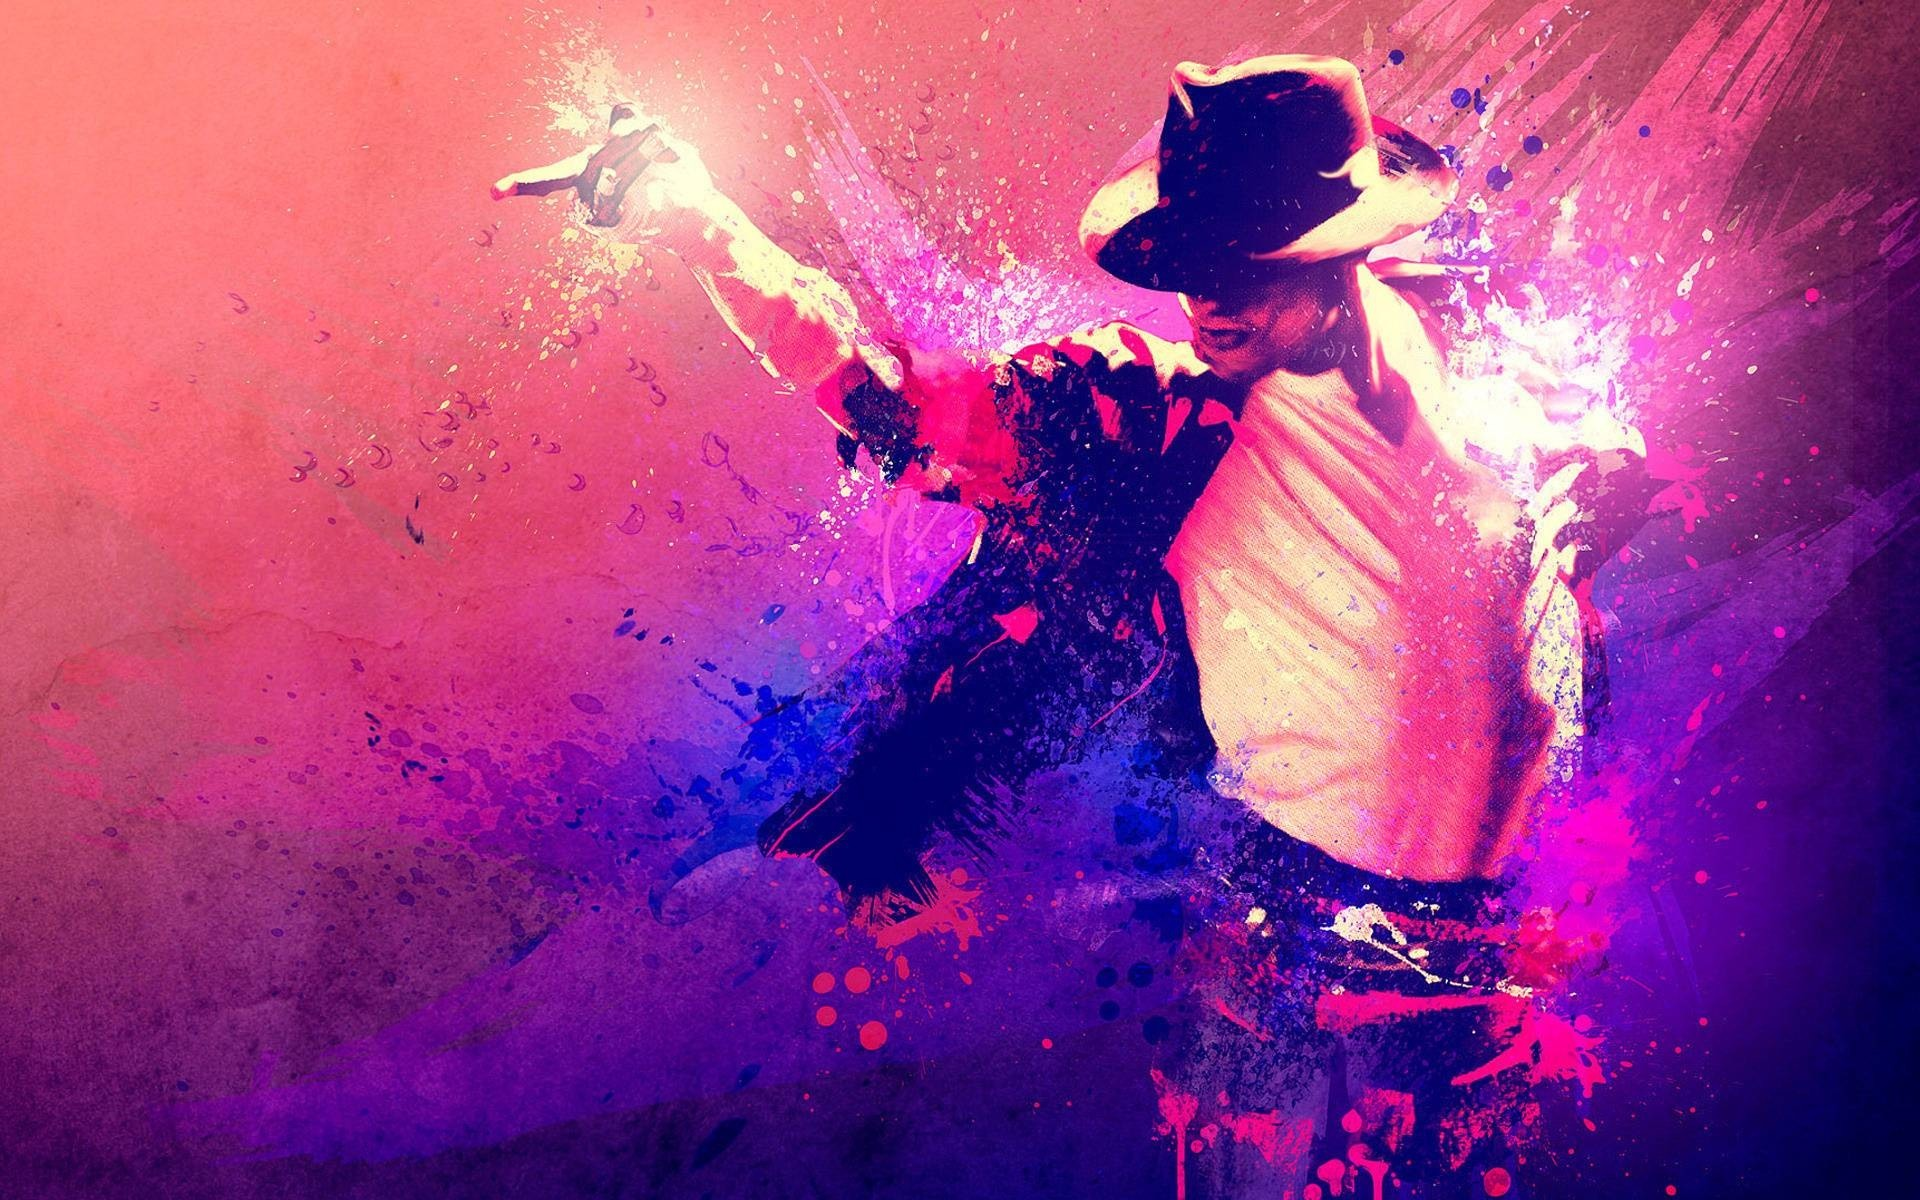 1920x1200 Michael Jackson Wallpaper Michael Jackson Hd Wallpapers Wallpaper Cave